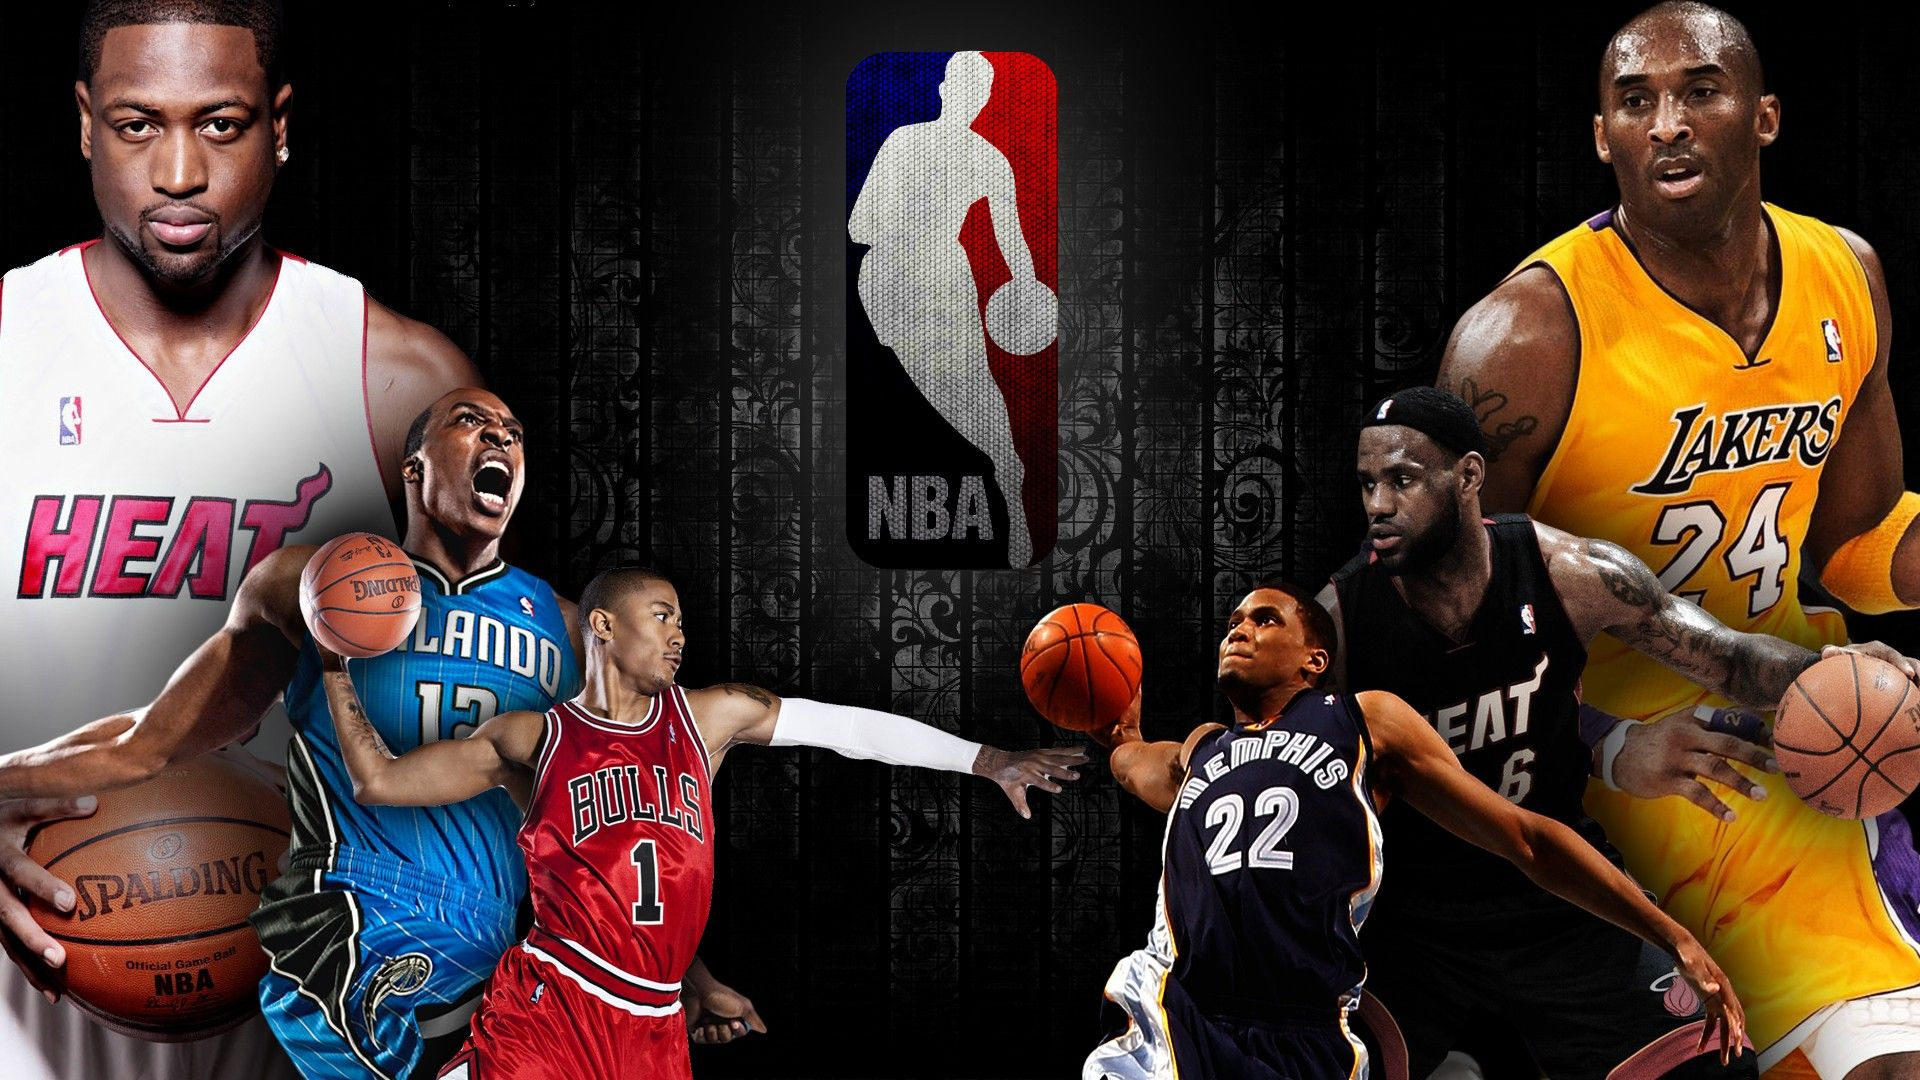 NBA Stream Of Live Sports Online